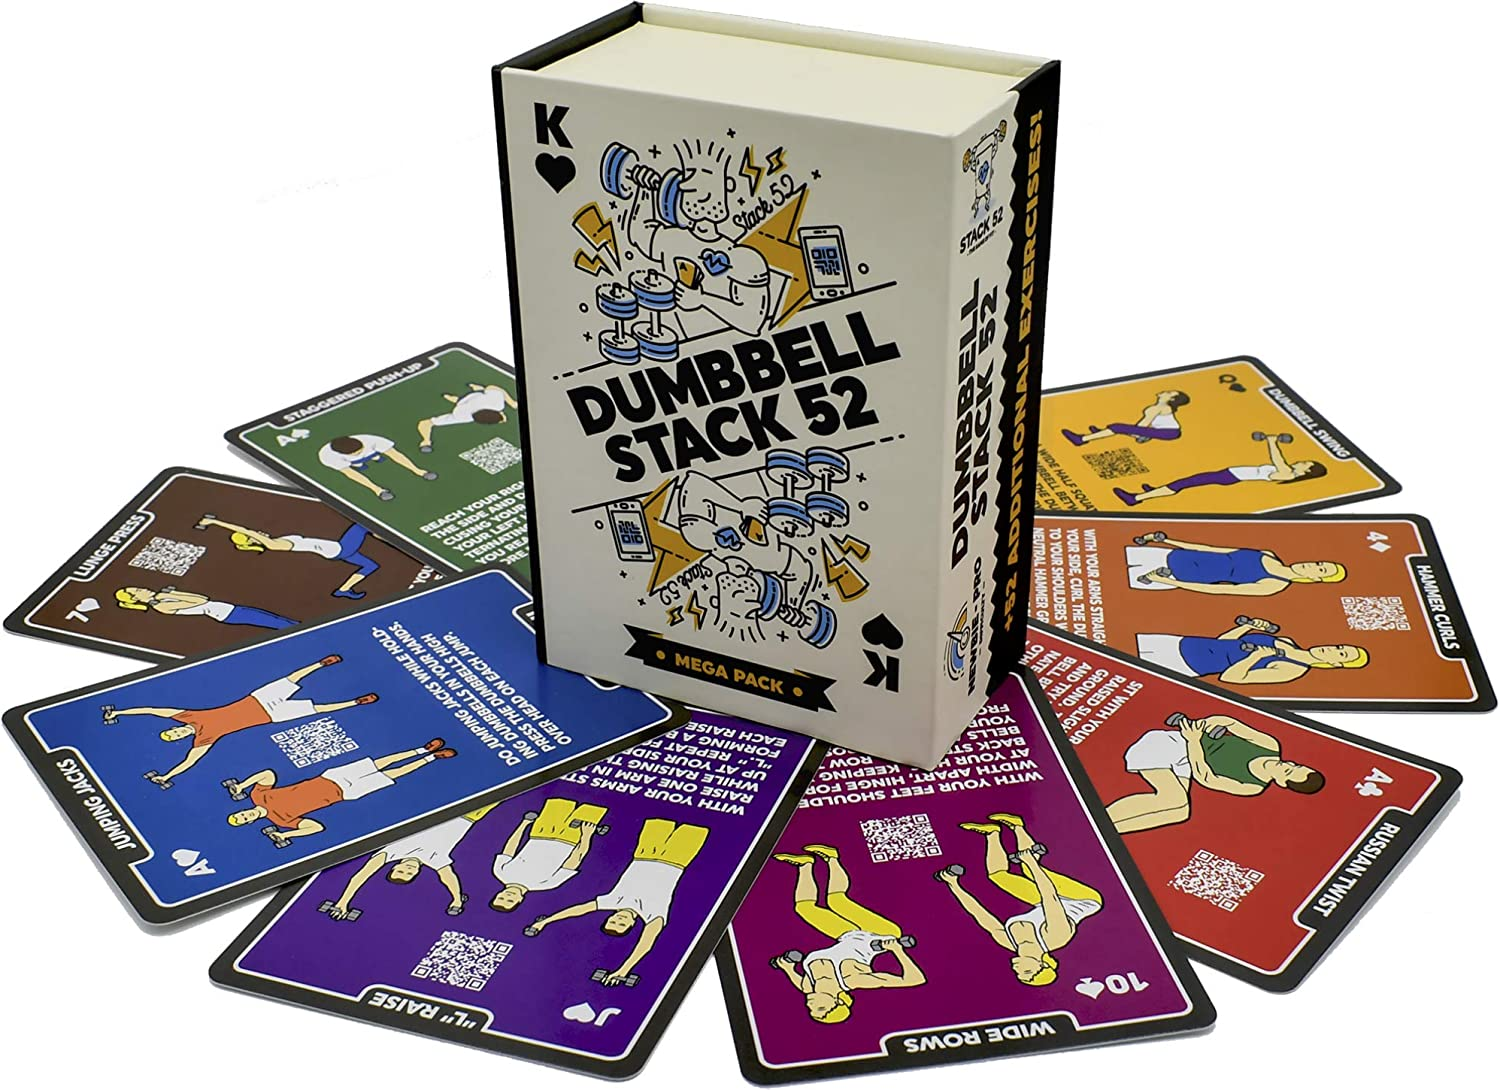 Stack 52 Dumbbell Exercise Cards. Dumbbell Workout Playing Card Game. Video Instructions Included. Perfect for Training with Adjustable Dumbbell Free Weight Sets and Home Gym Fitness.